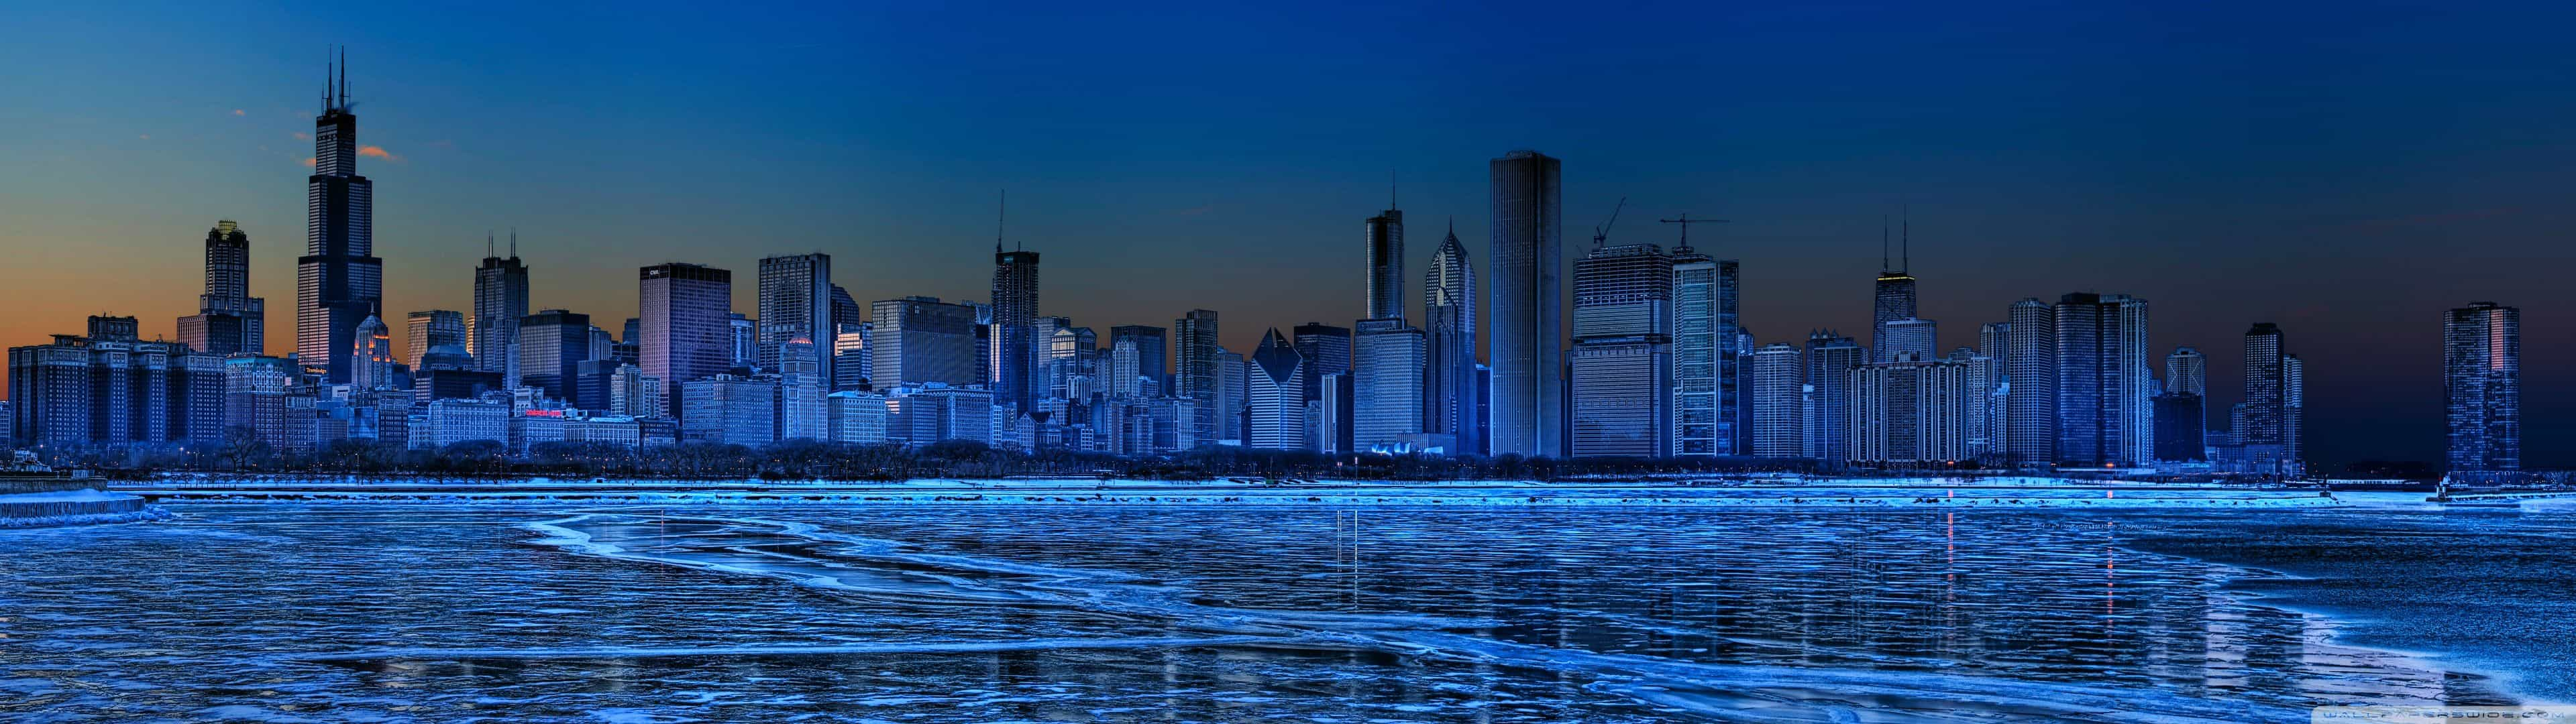 chicago skyline united states dual monitor wallpaper